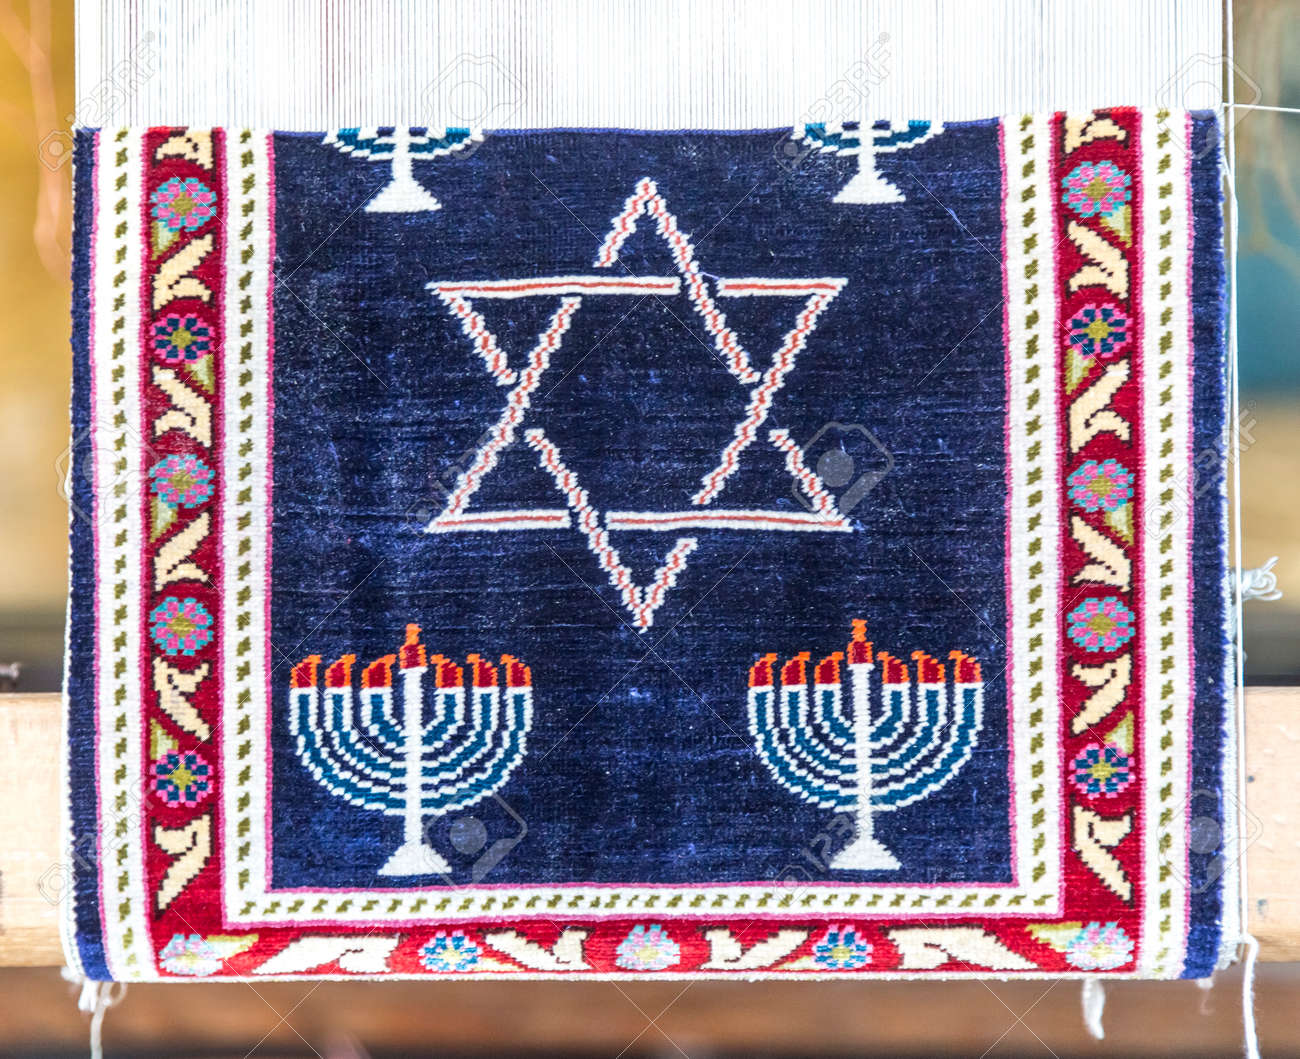 Handcrafted carpet with jewish symbols menorah and magen david handcrafted carpet with jewish symbols menorah and magen david stock photo 73874959 biocorpaavc Image collections